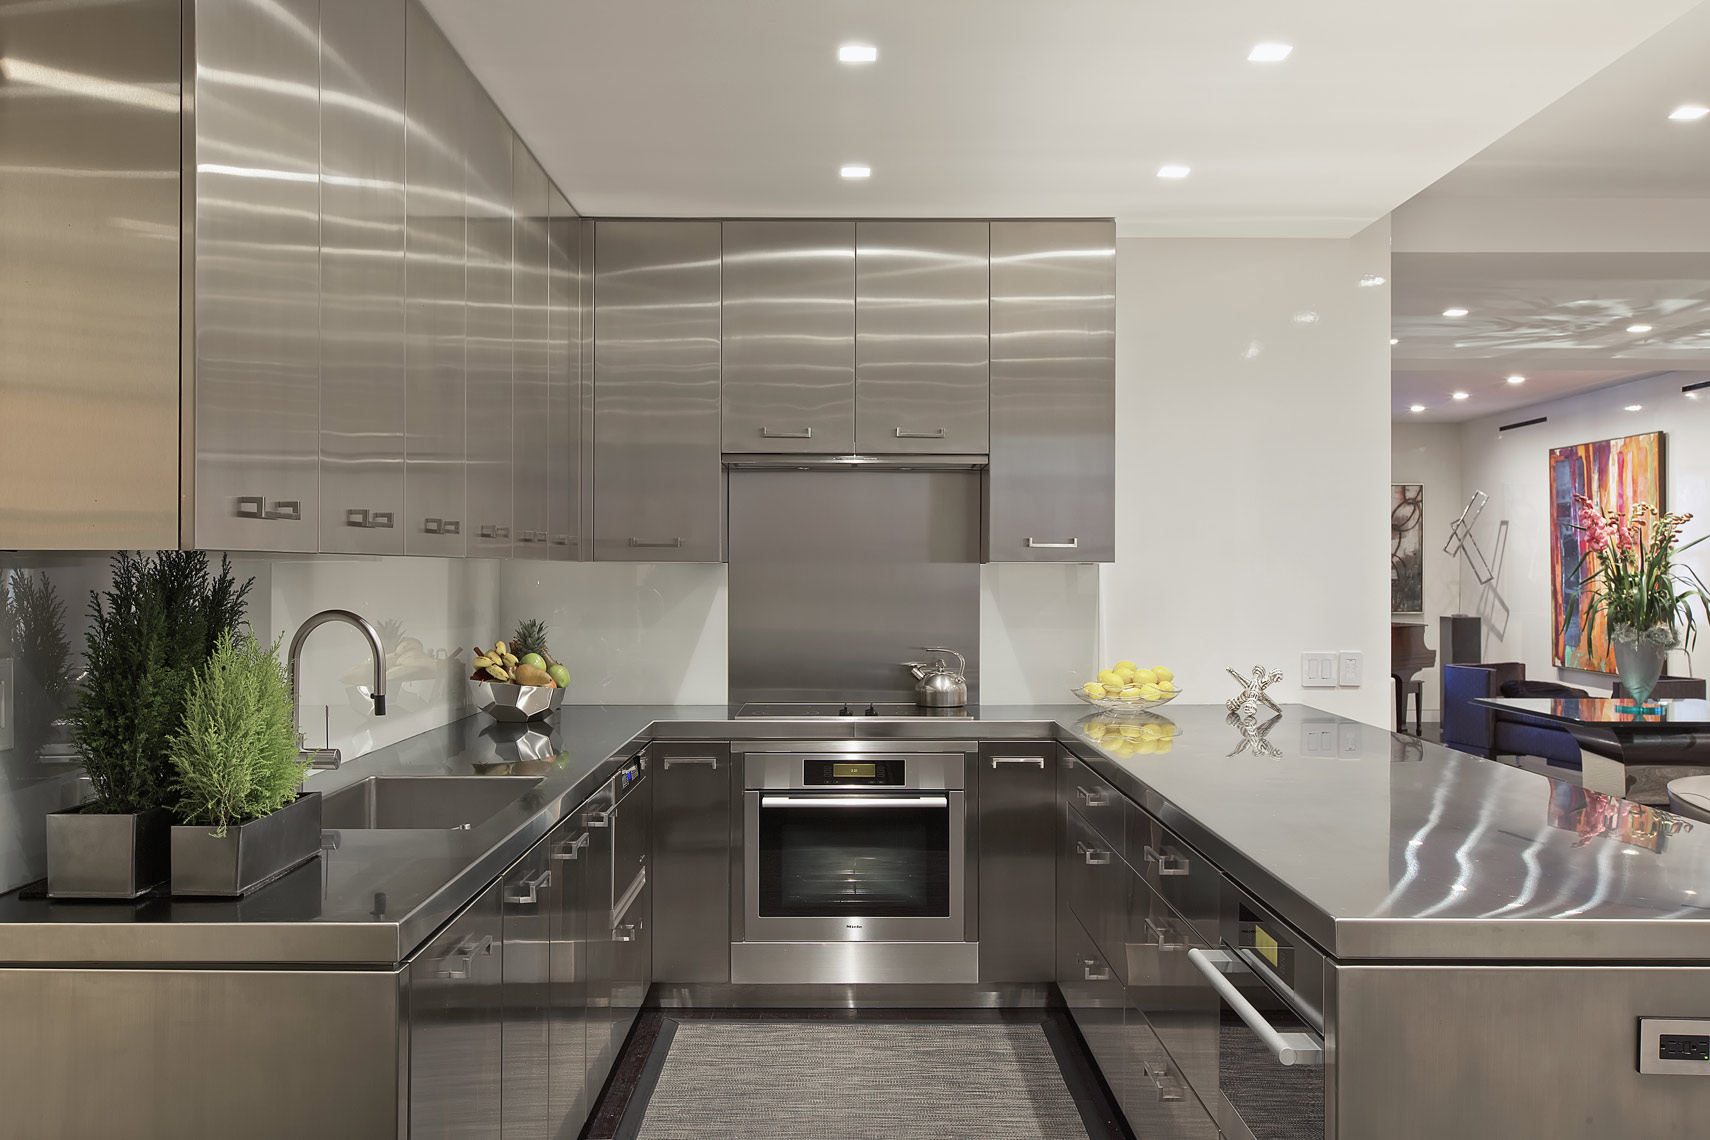 Interior Photography of stainless steel kitchen